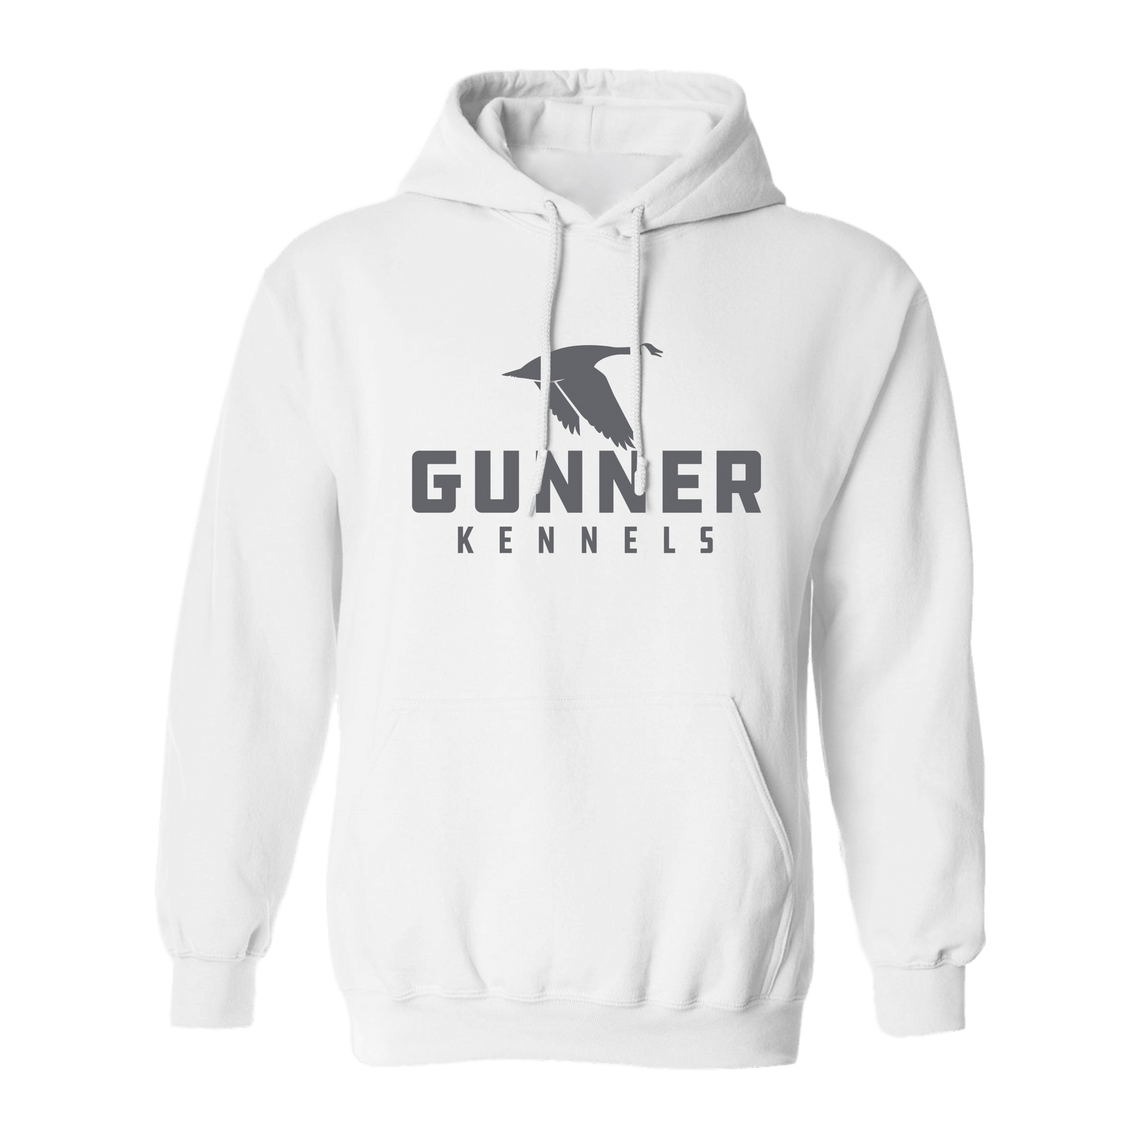 OG HOODIE - GUNNER KENNELS - Best Dog Kennels - Crash Tested Dog Crates